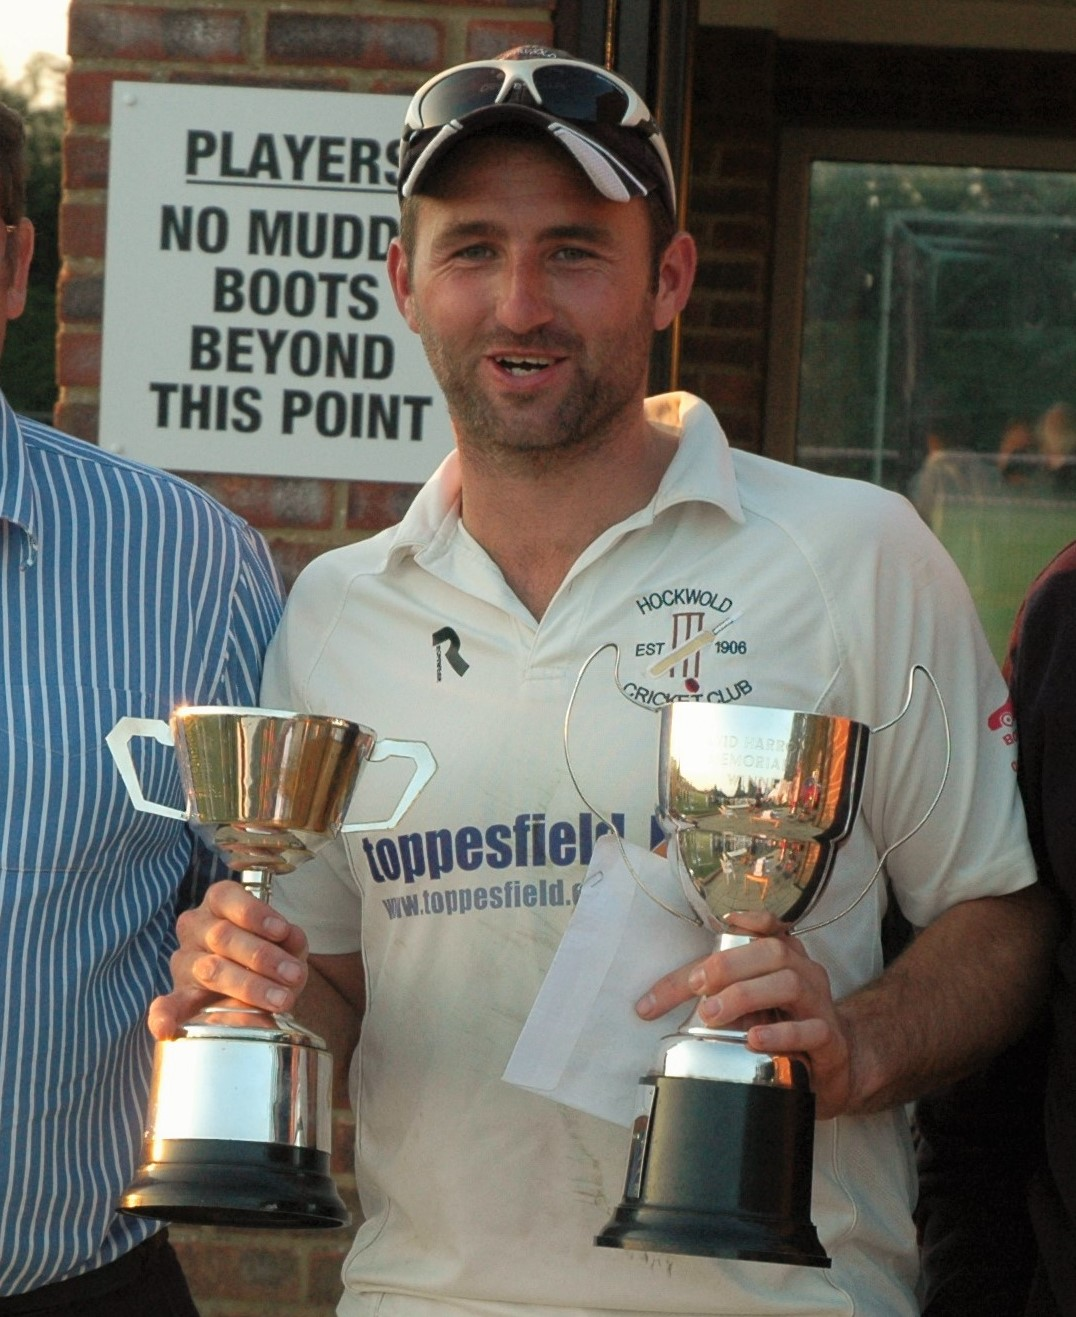 Roy_close-up_with_trophies